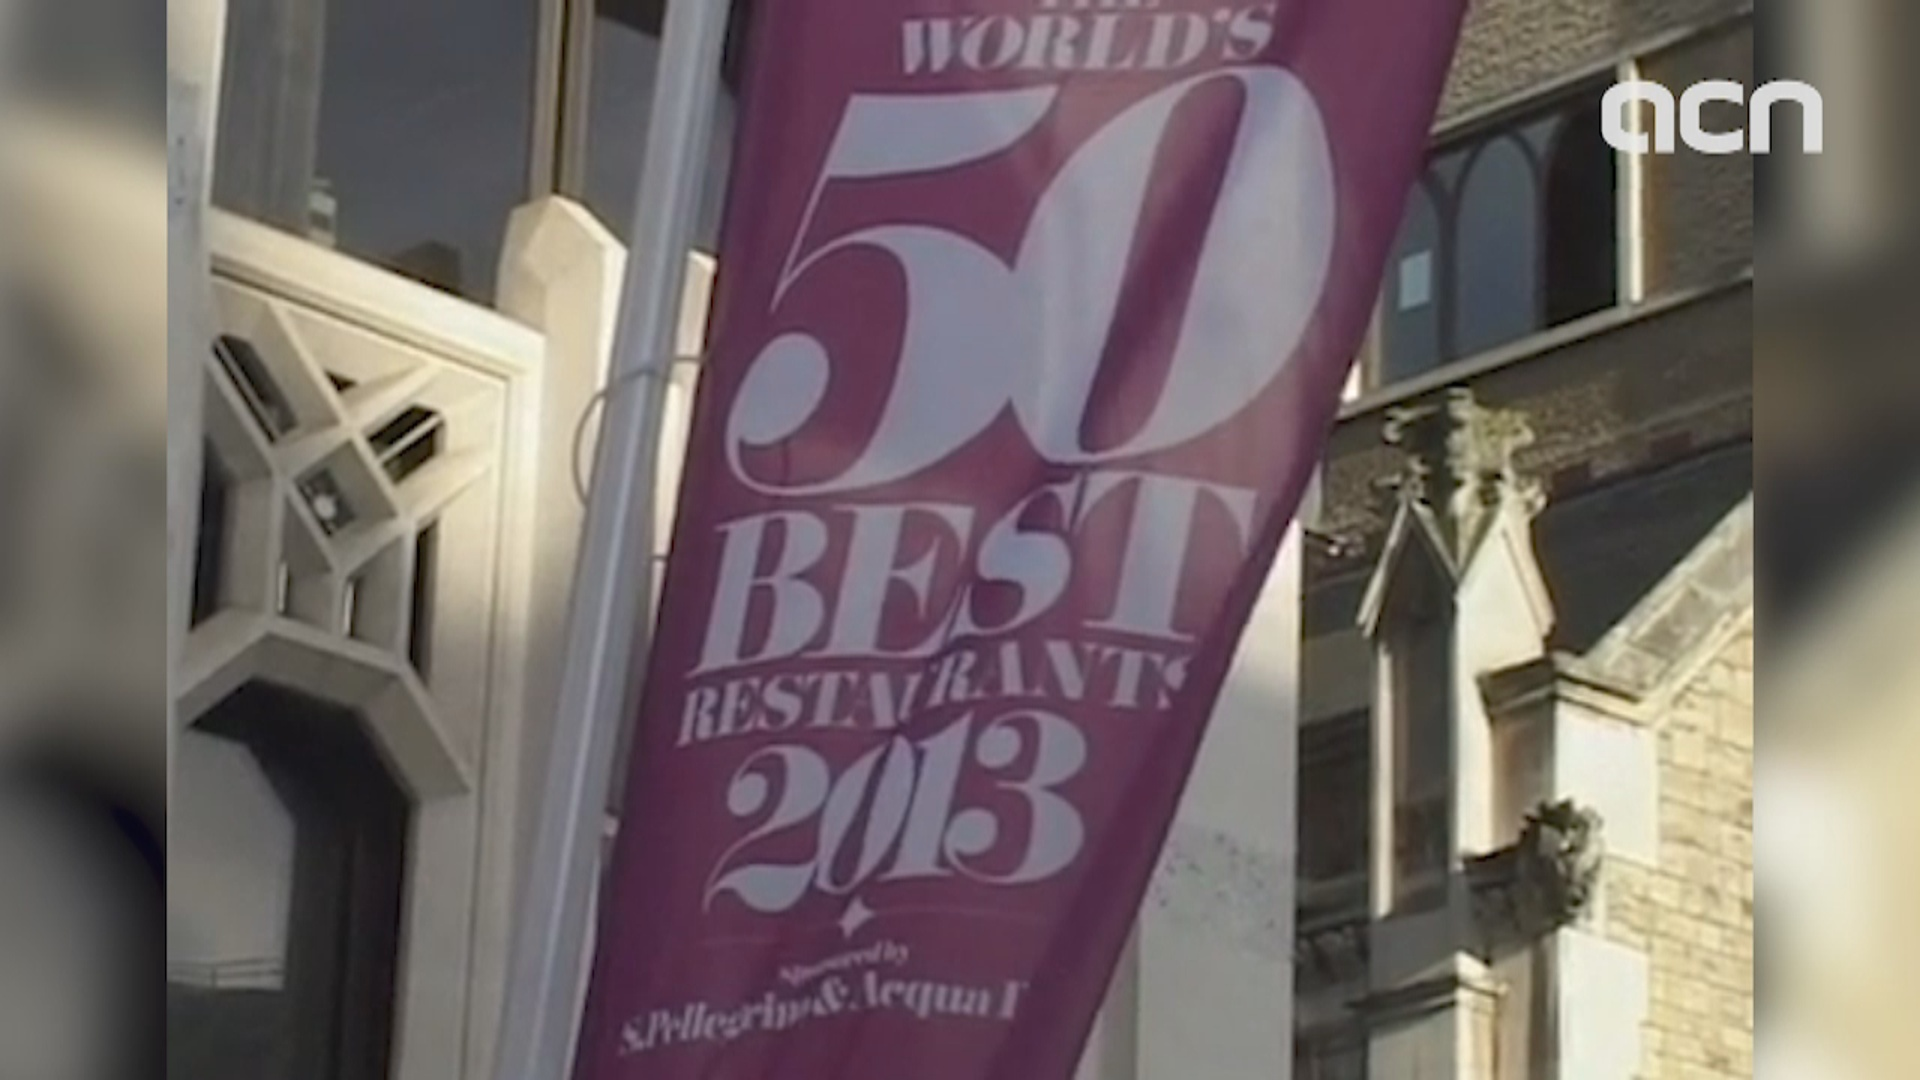 Roca brothers back at No.2 of the World's 50 Best Restaurant ranking